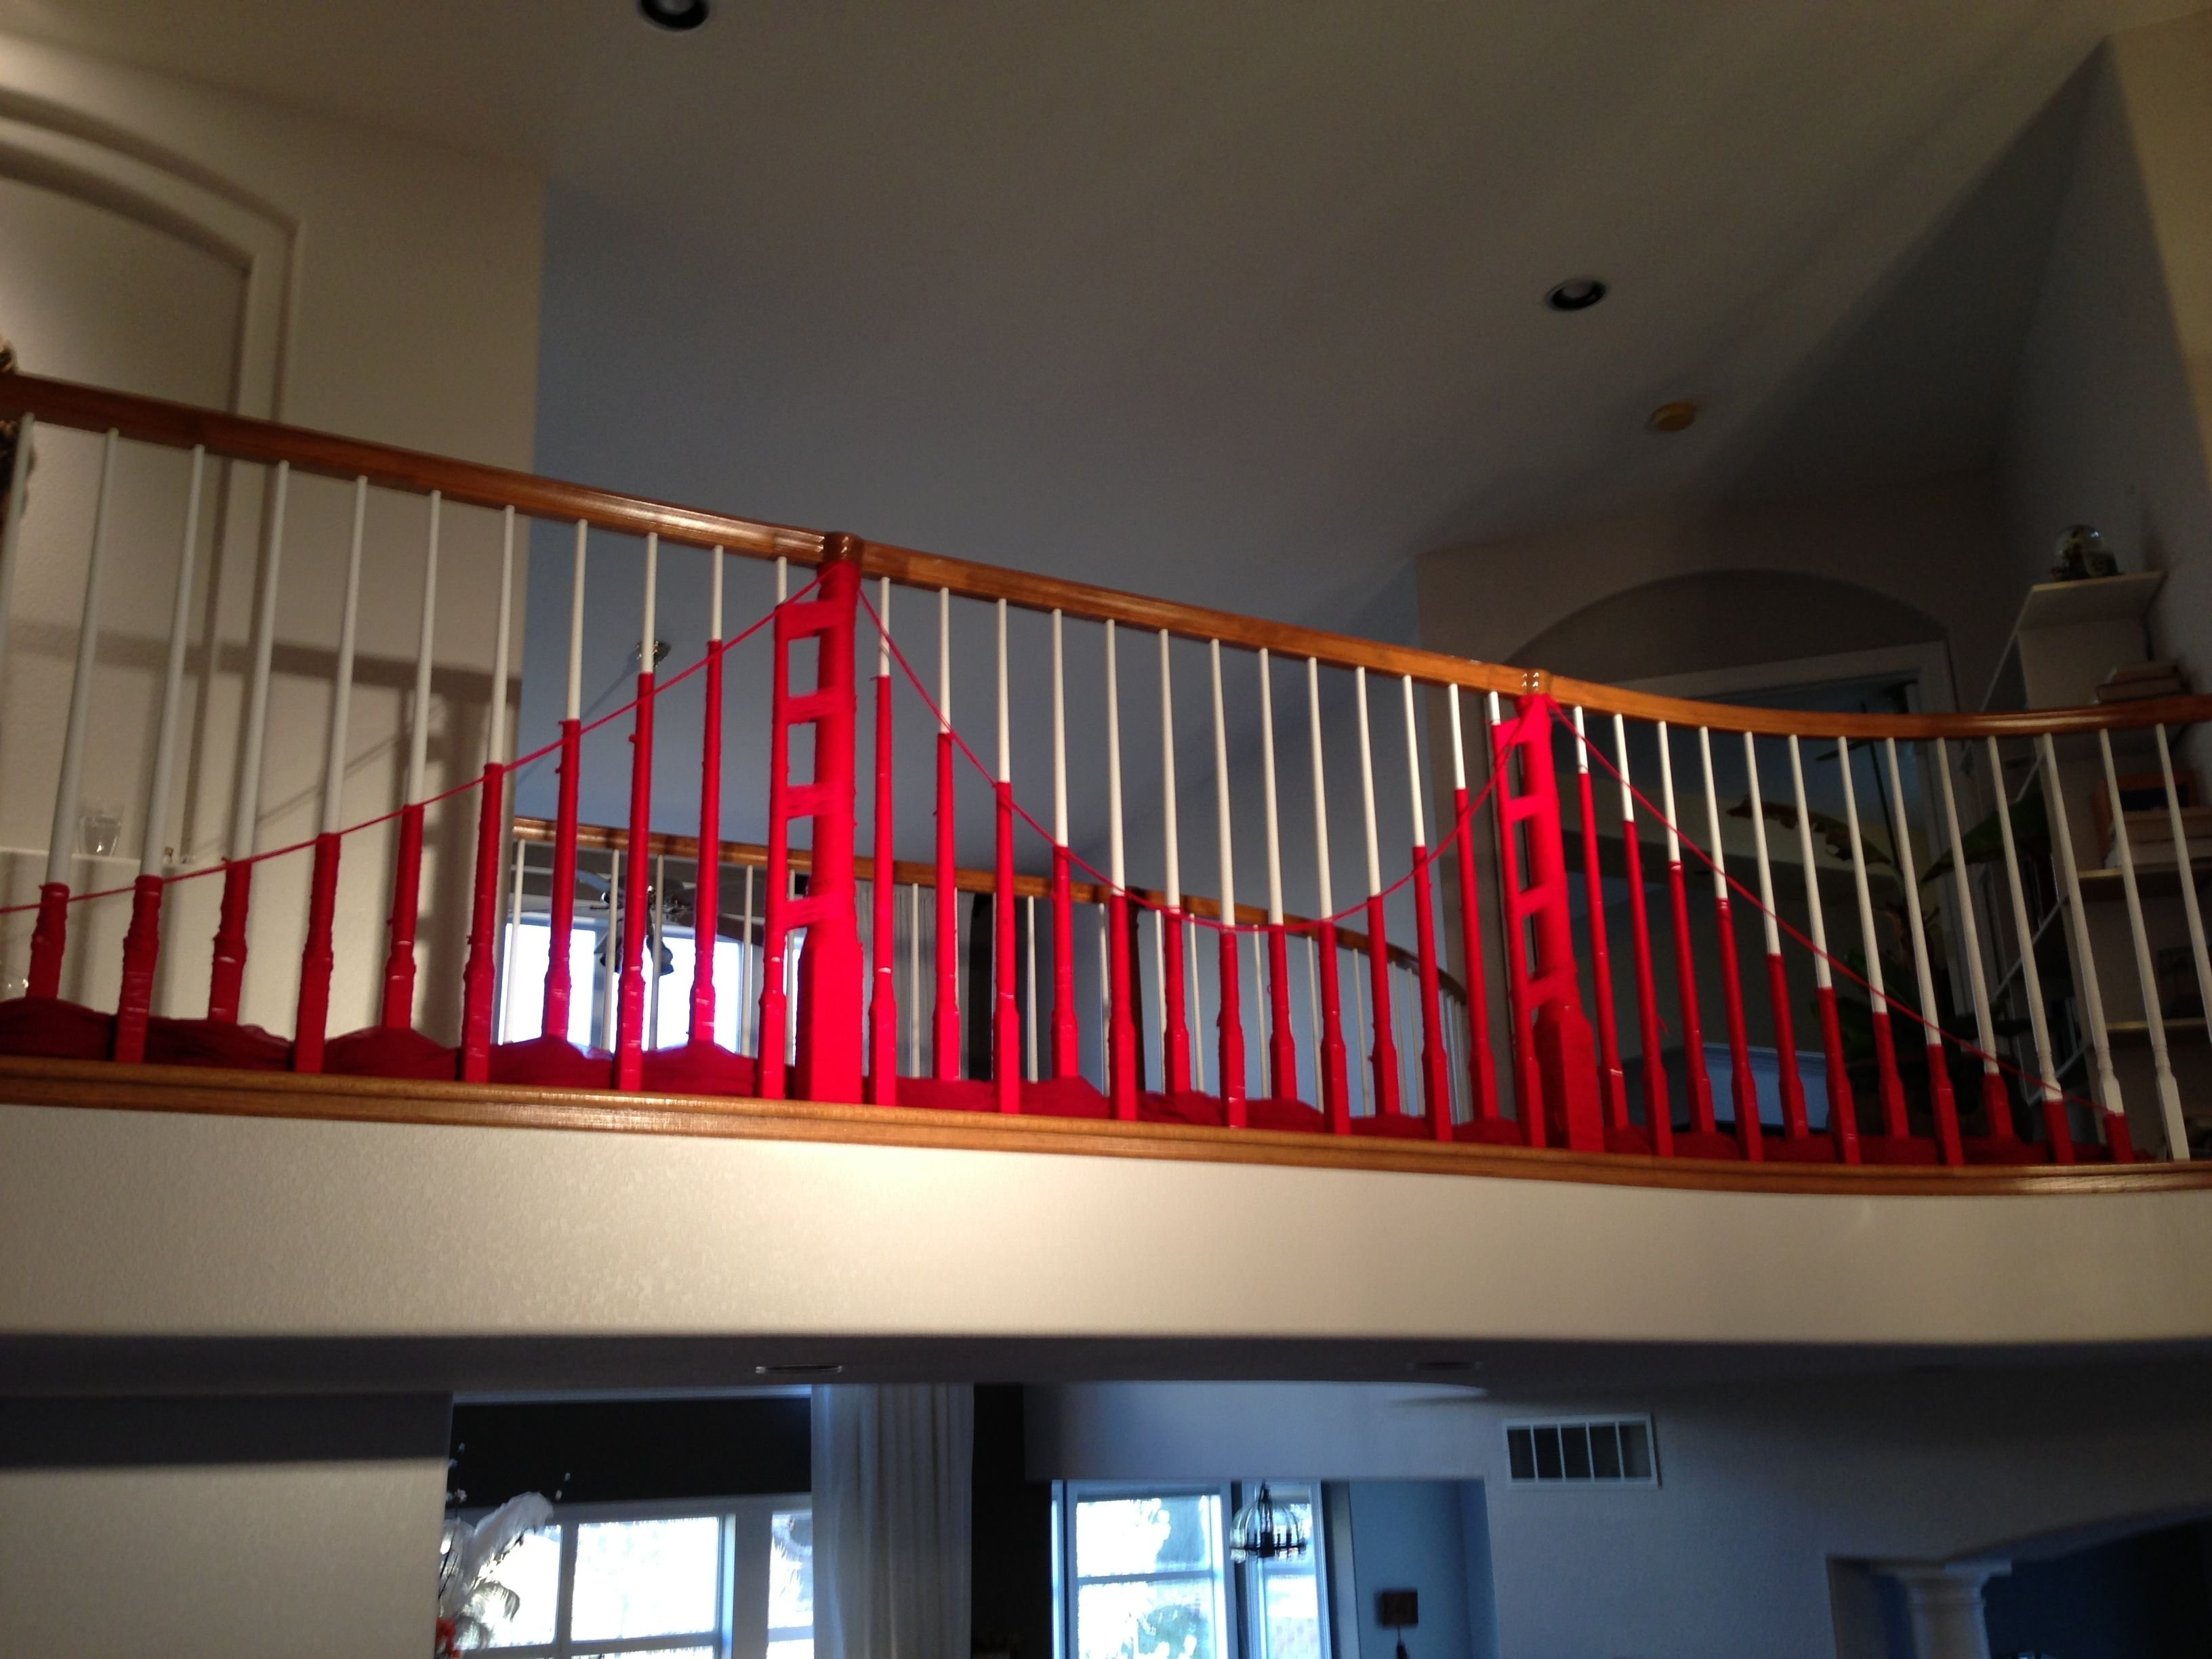 yarn bombing your banister for a san francisco themed party. | arts